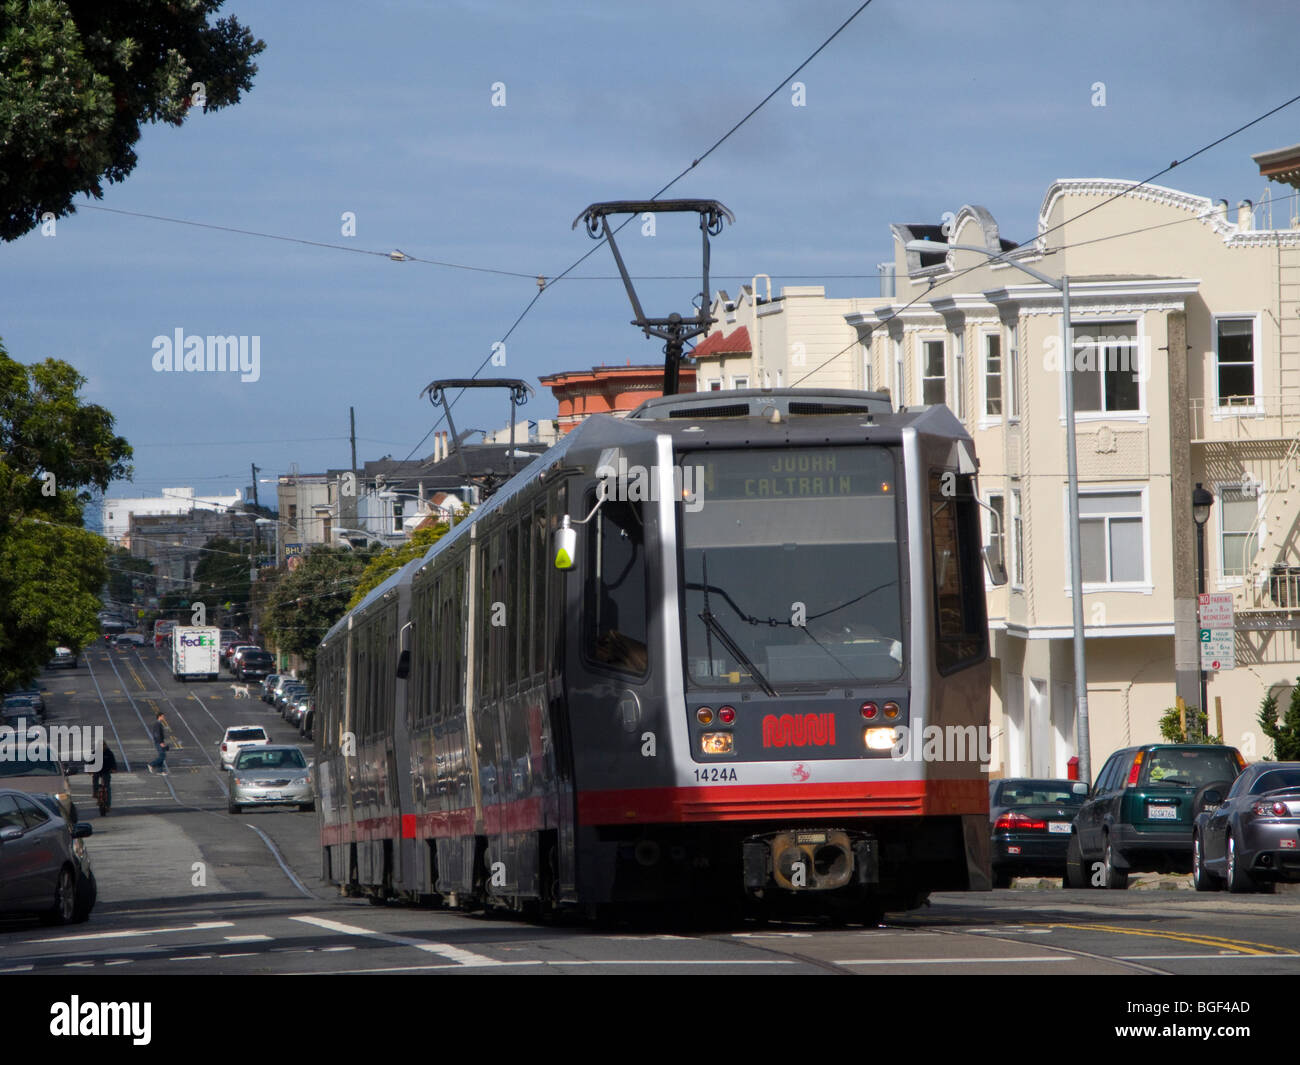 Ucsf High Resolution Stock Photography And Images Alamy